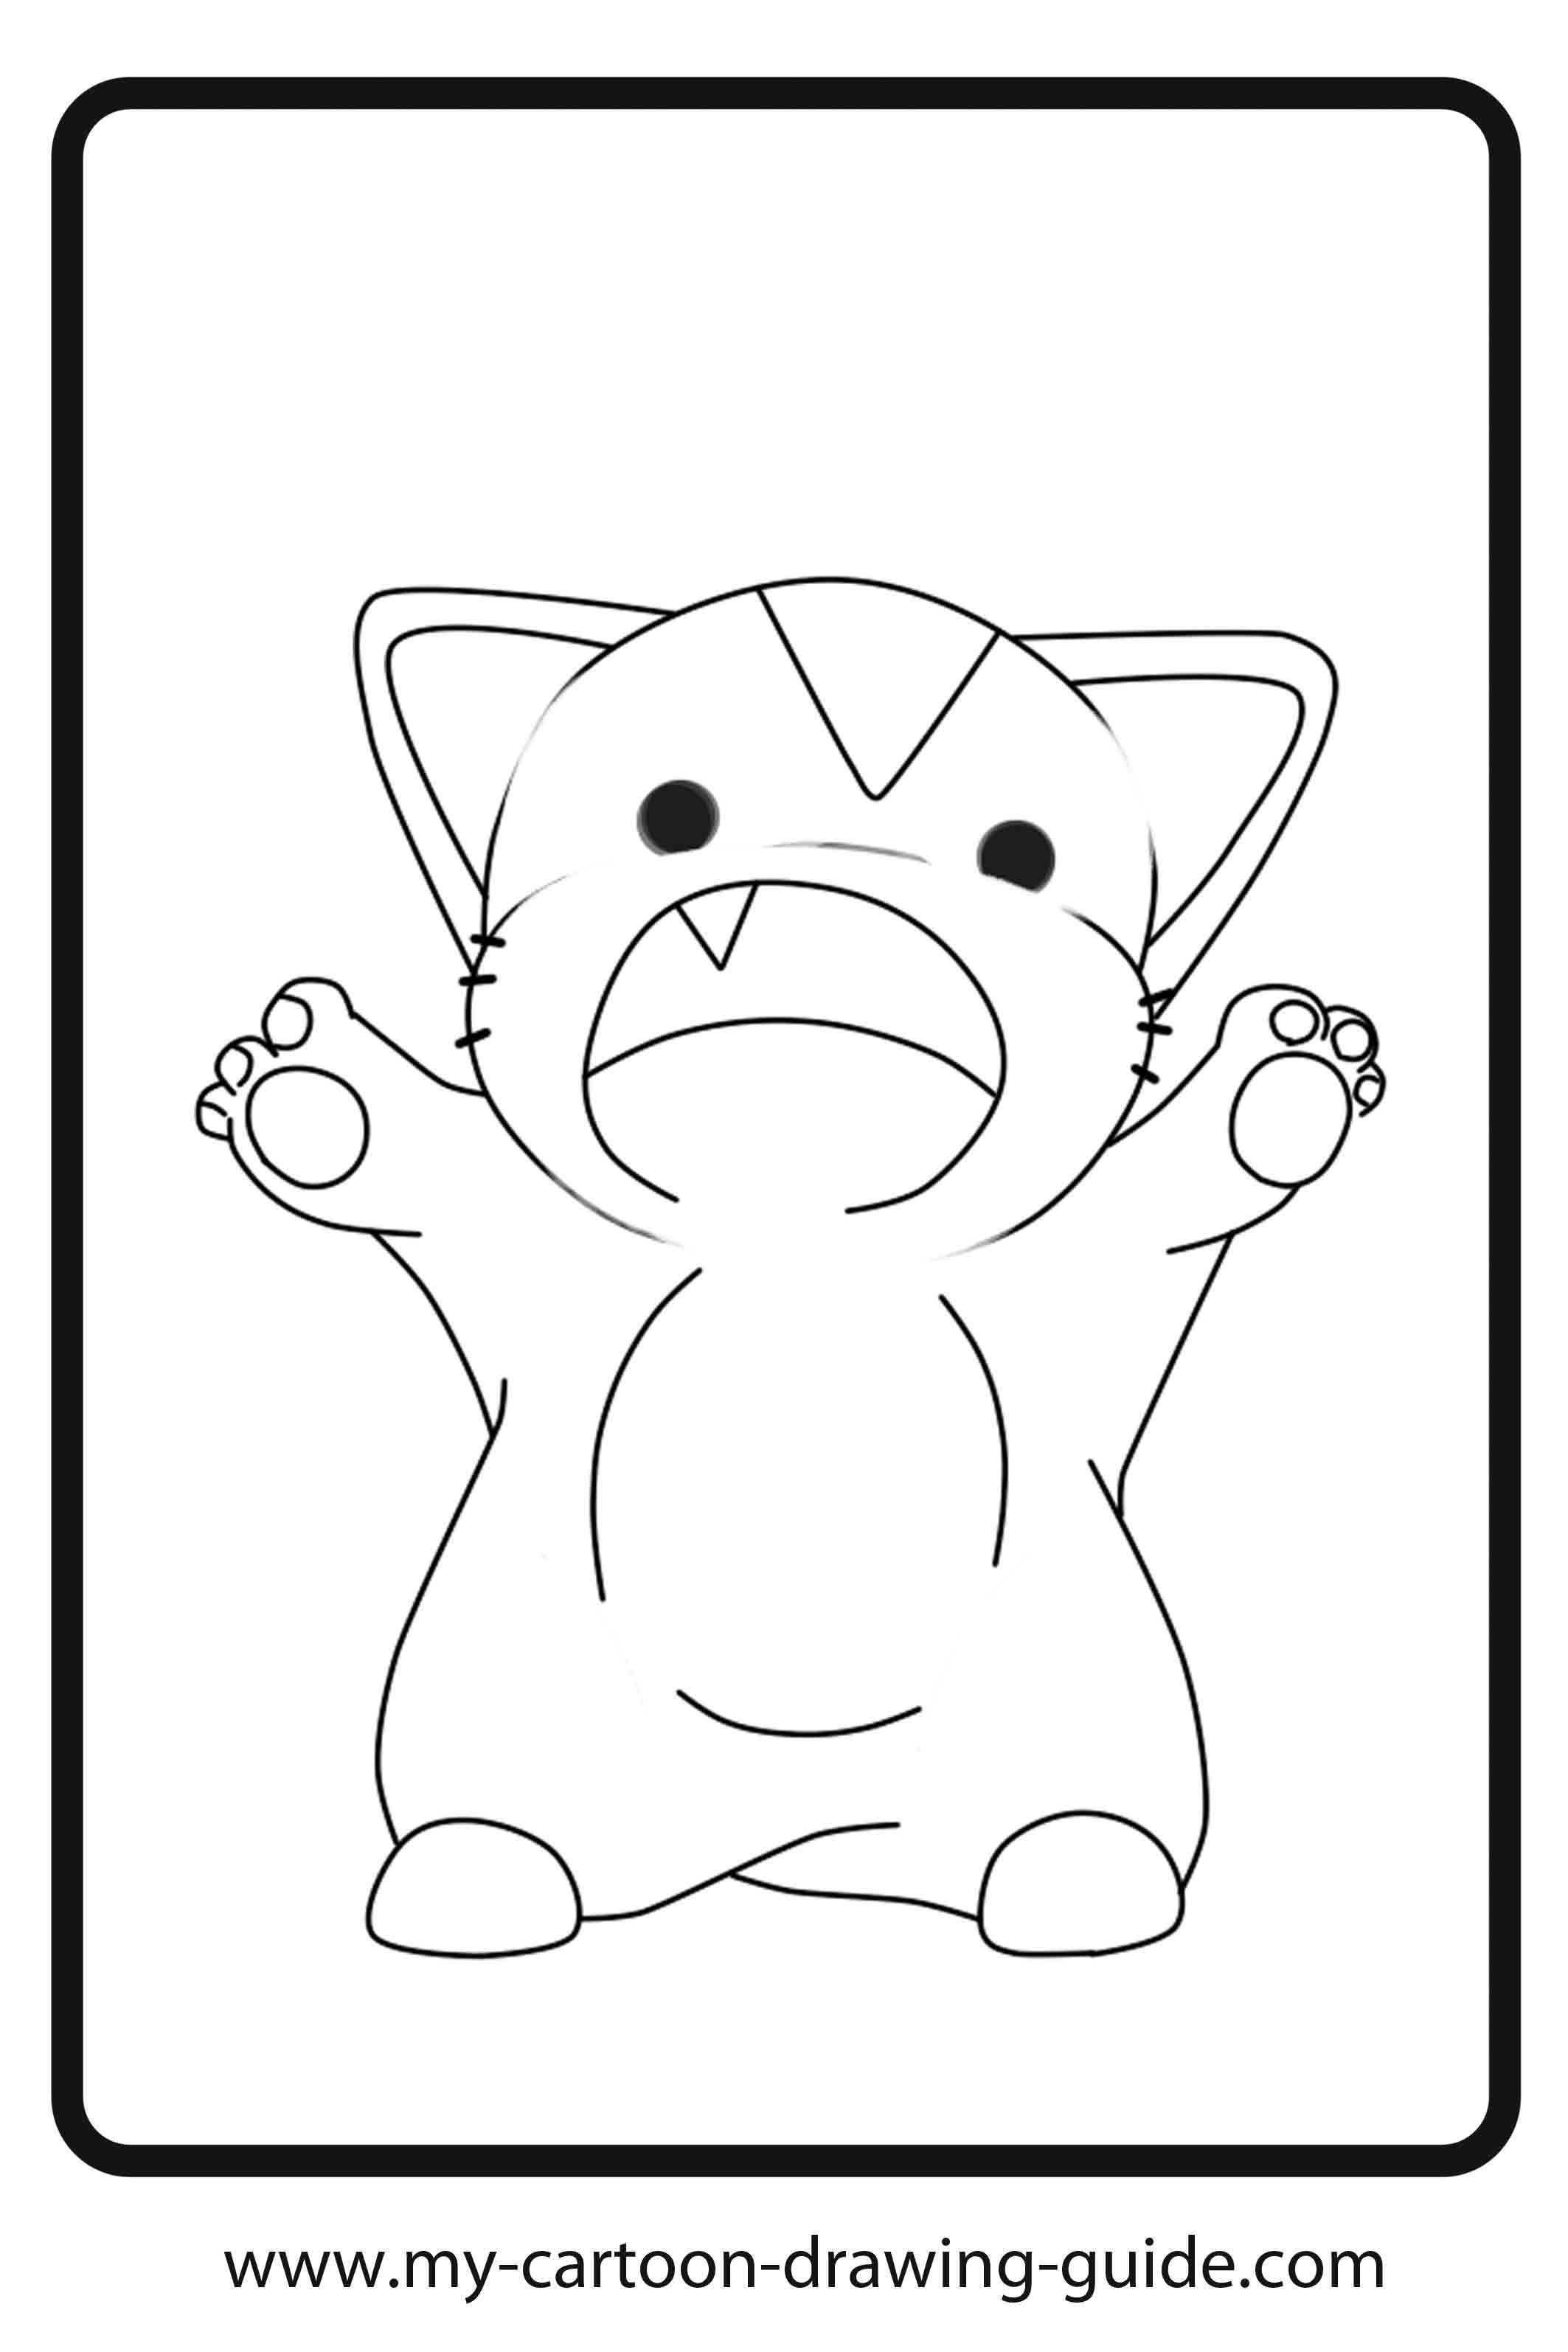 Anime kittens coloring pages ~ Anime Cat Girl Coloring Pages - Coloring Home